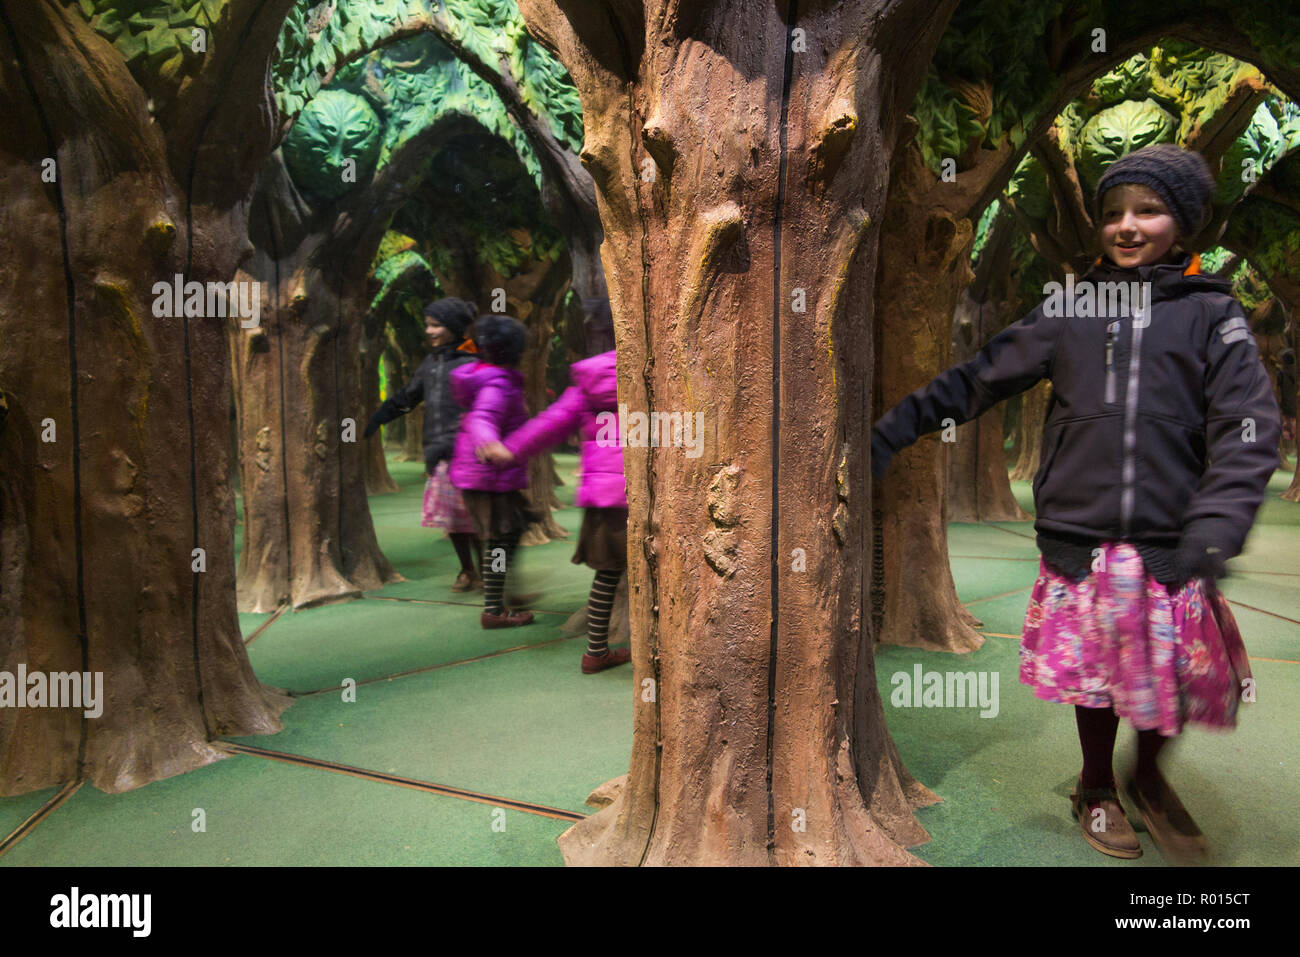 King Arthur's Mirror Maze with exploring children / kids / kids at Longleat Safari Park, Wiltshire. UK (103) - Stock Image